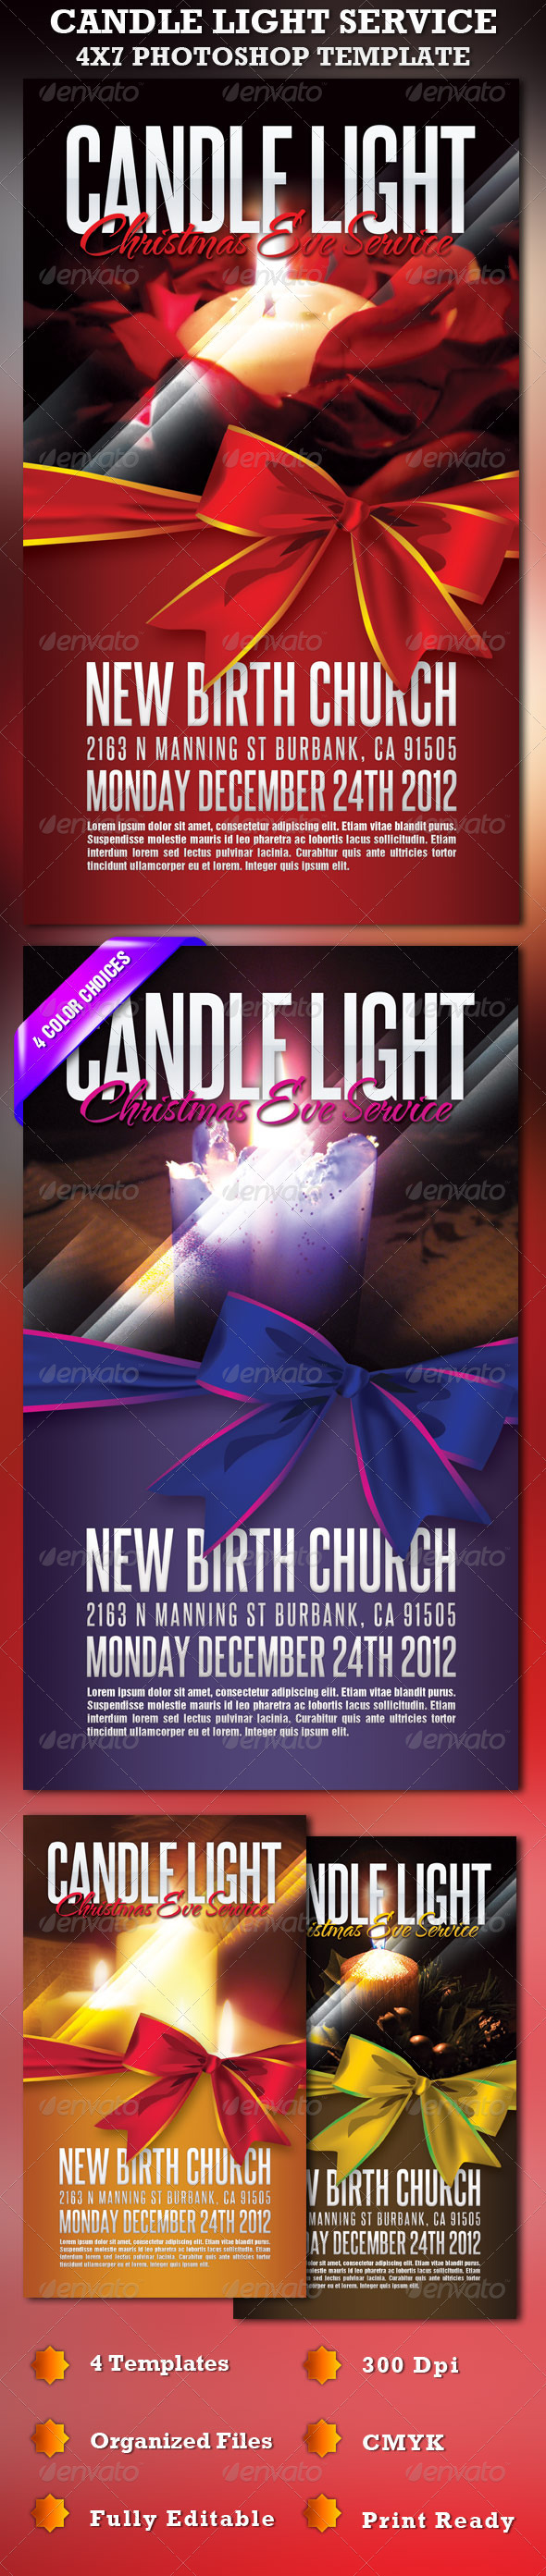 GraphicRiver Candle Light Service 4X7 Photoshop Template 854072